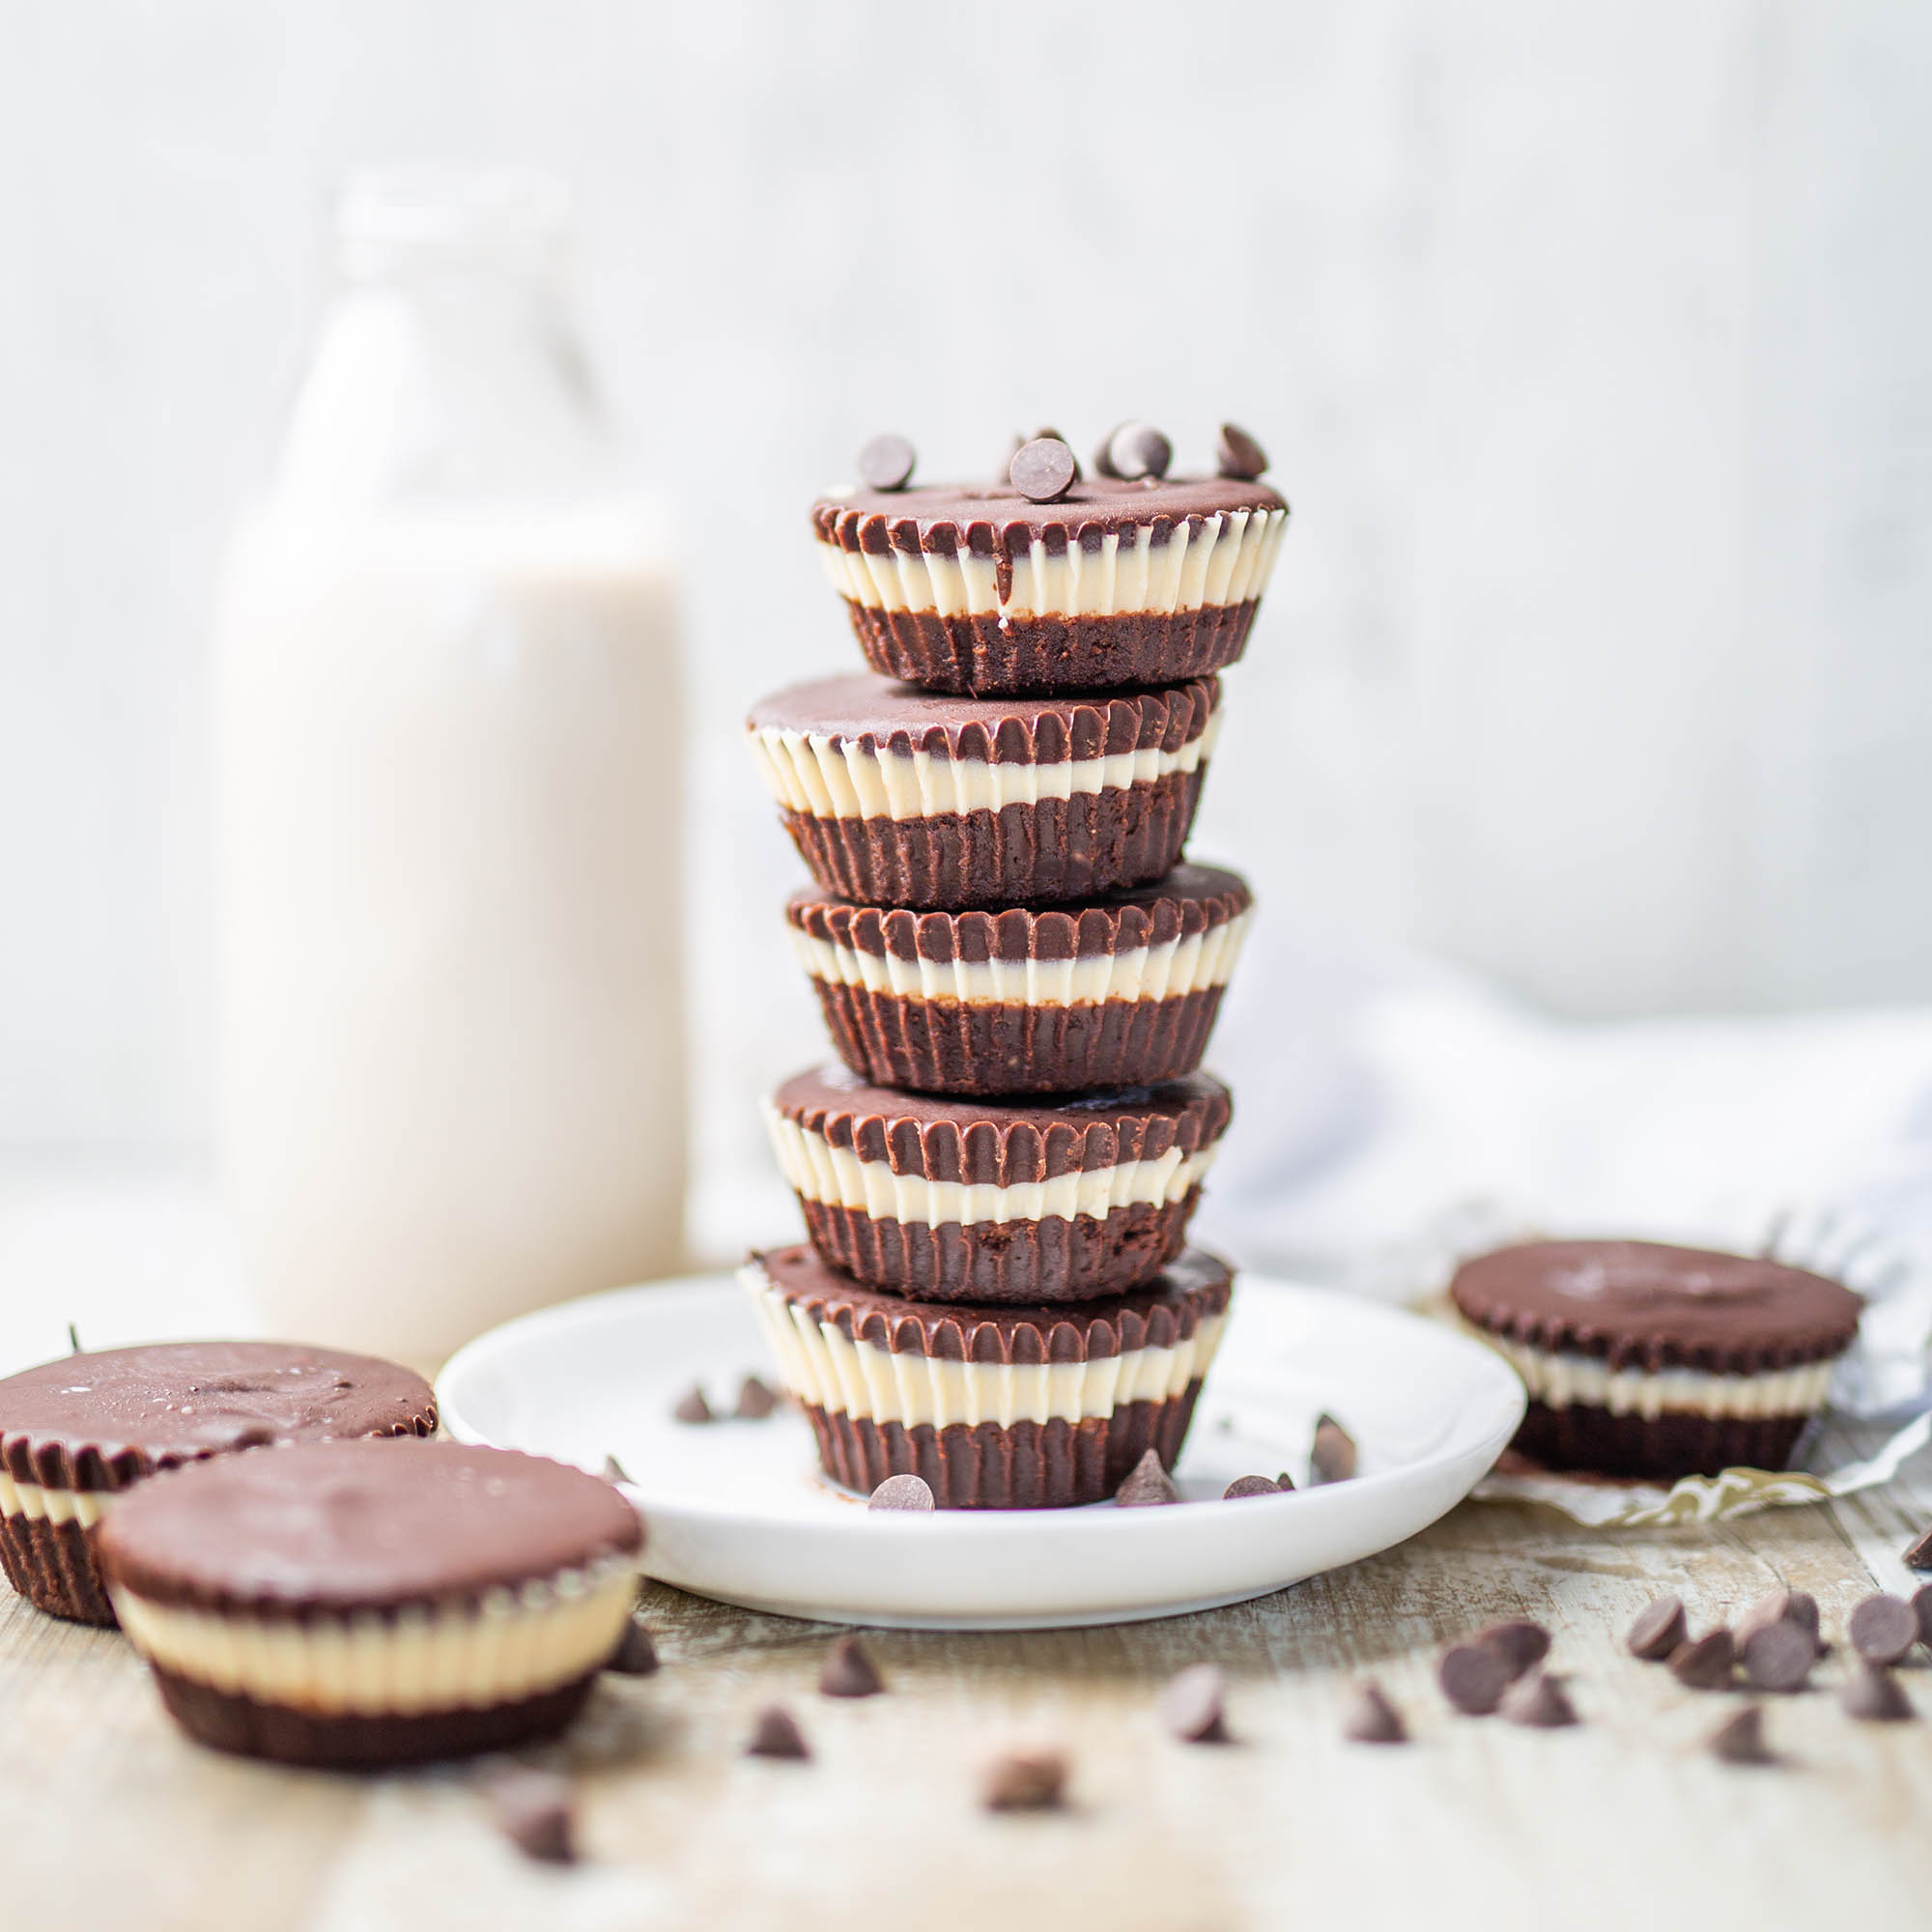 Sunflower Butter Chocolate Cups with Vegan White Chocolate Centre